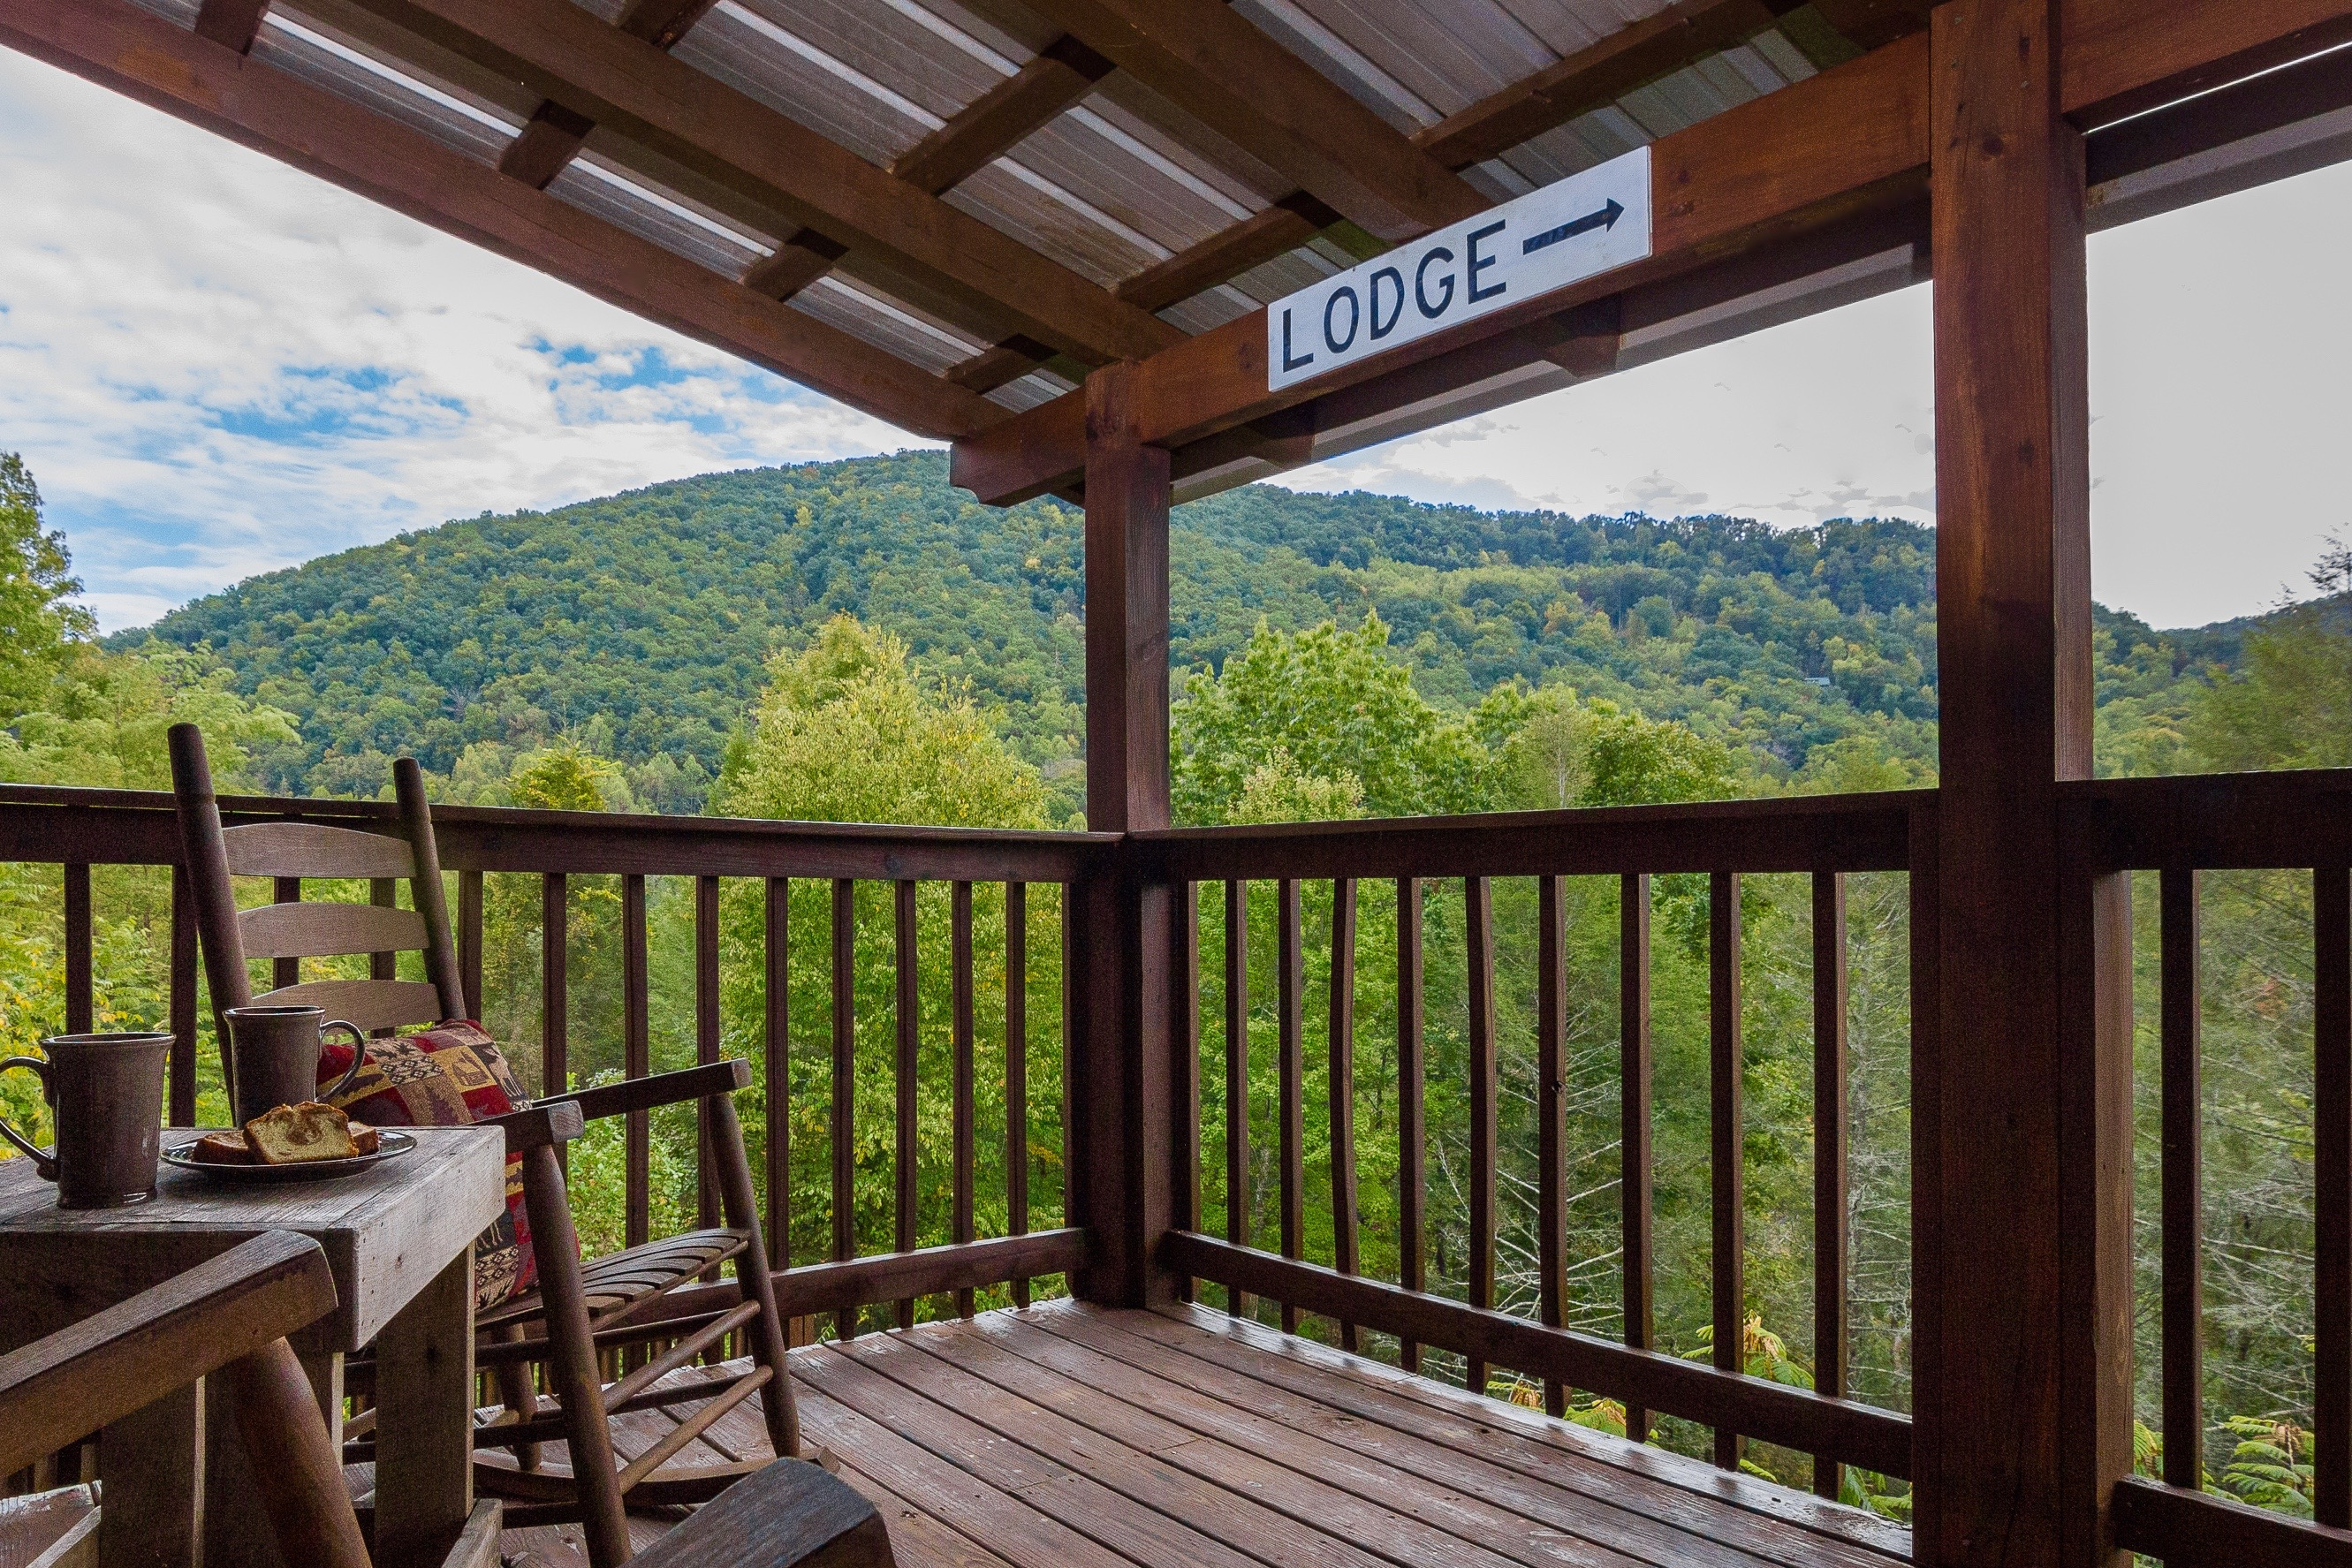 7 Bedroom Cabins In Gatlinburg Tn 28 Images Gatlinburg Tennessee Usa Smoky Mountains